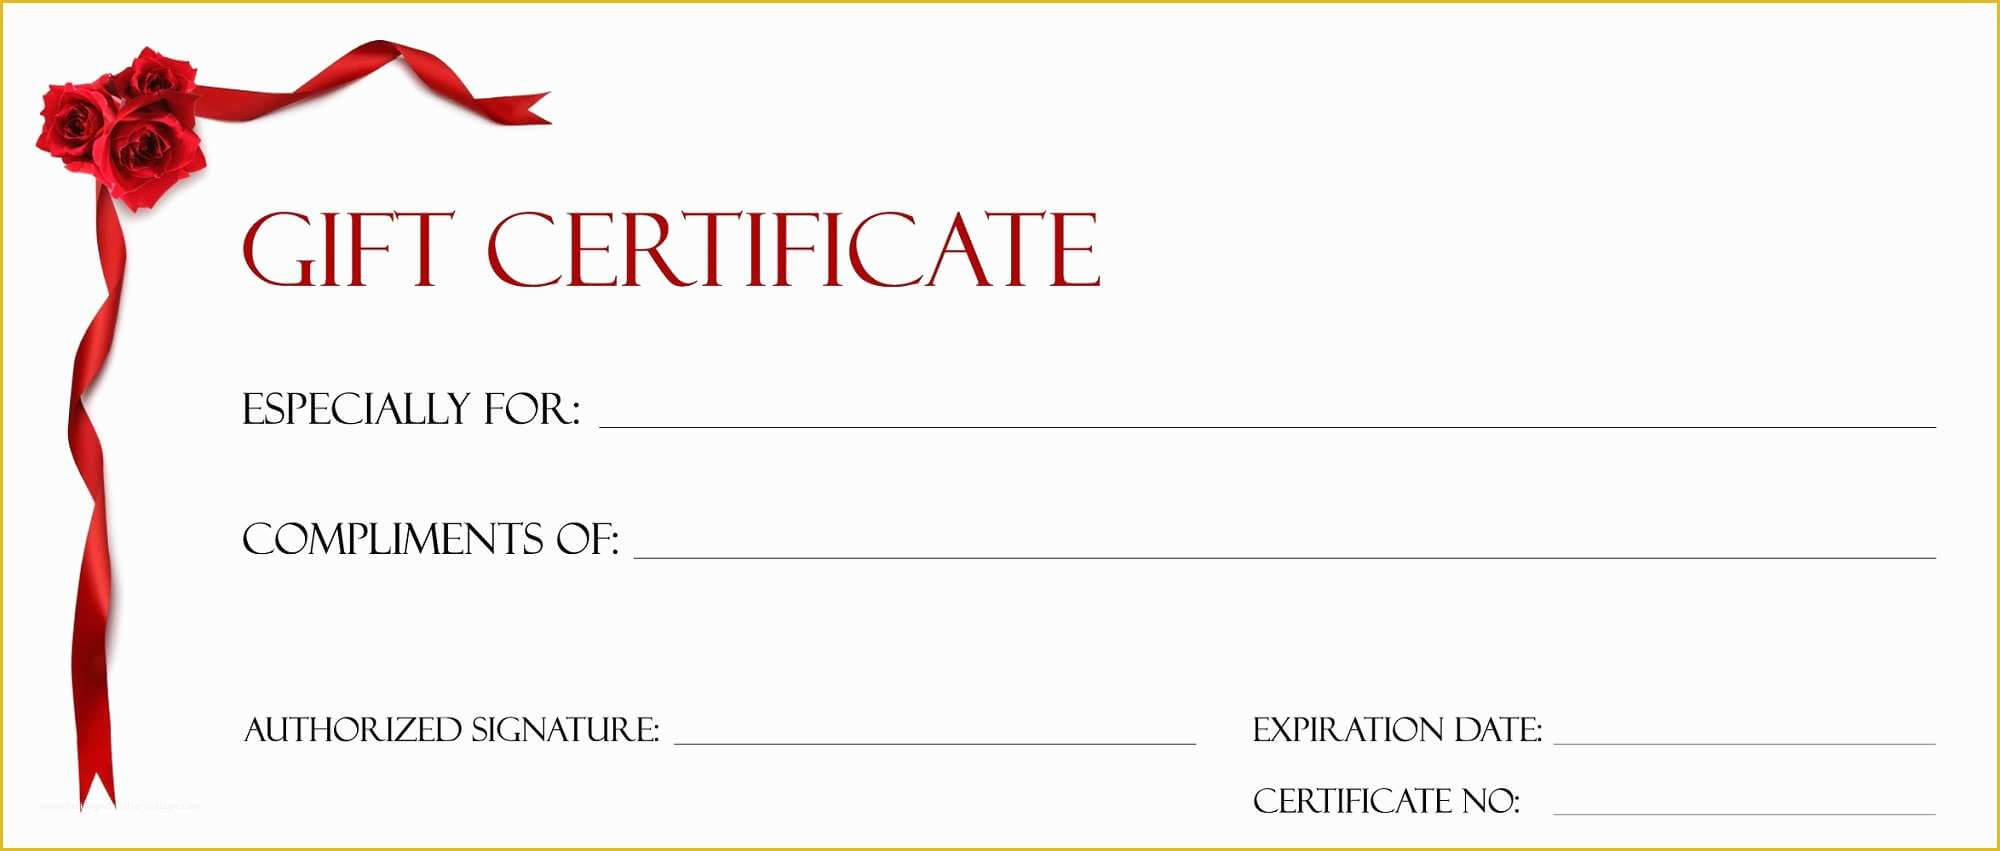 003 Gift Certificate Template Pages Free Printable Christmas Regarding Certificate Template For Pages